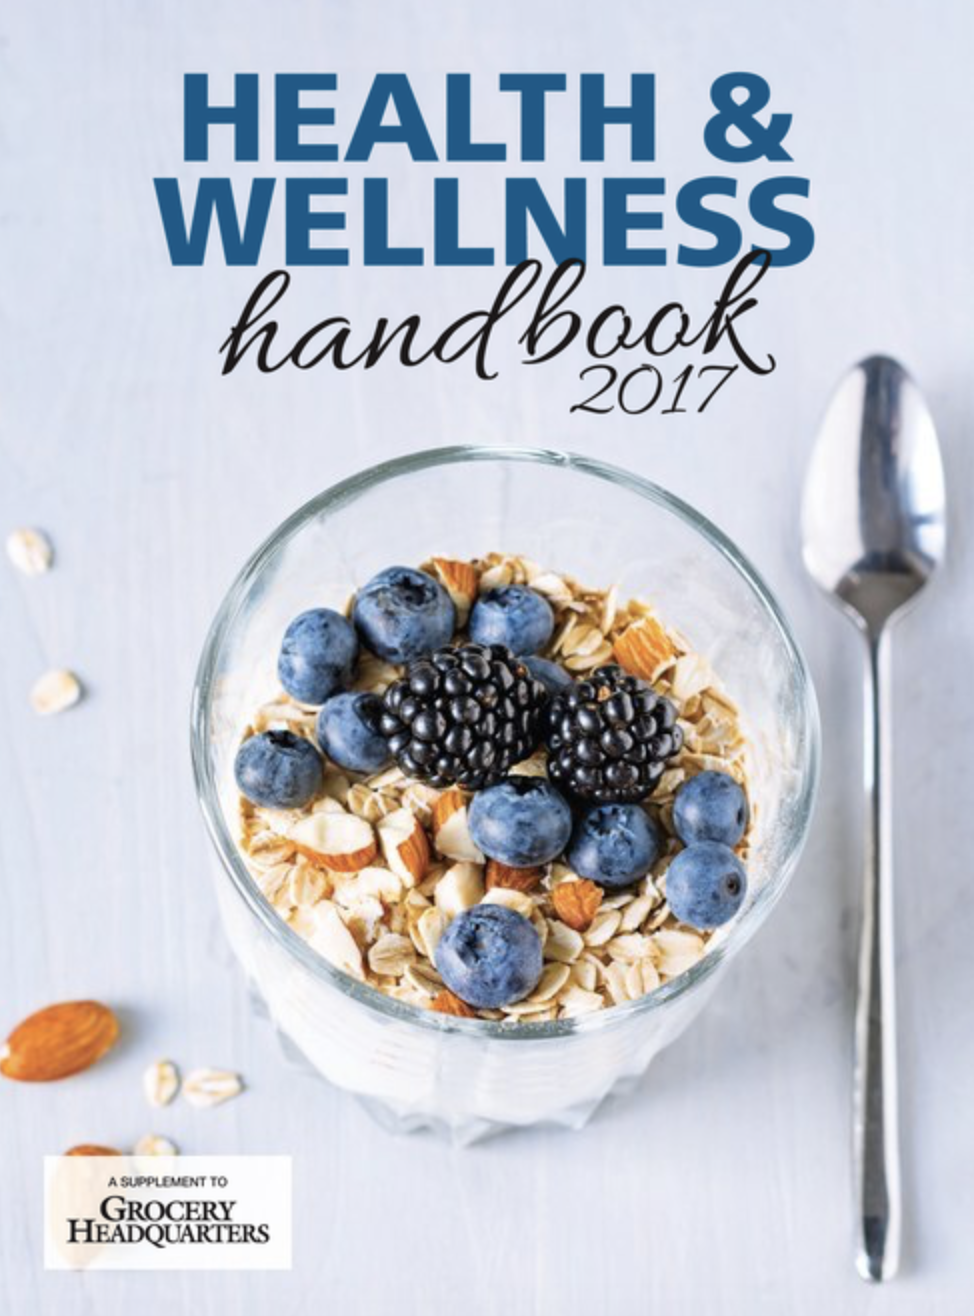 Winsight Grocery Business Magazine Health & Wellness Handbook 2017 Issue